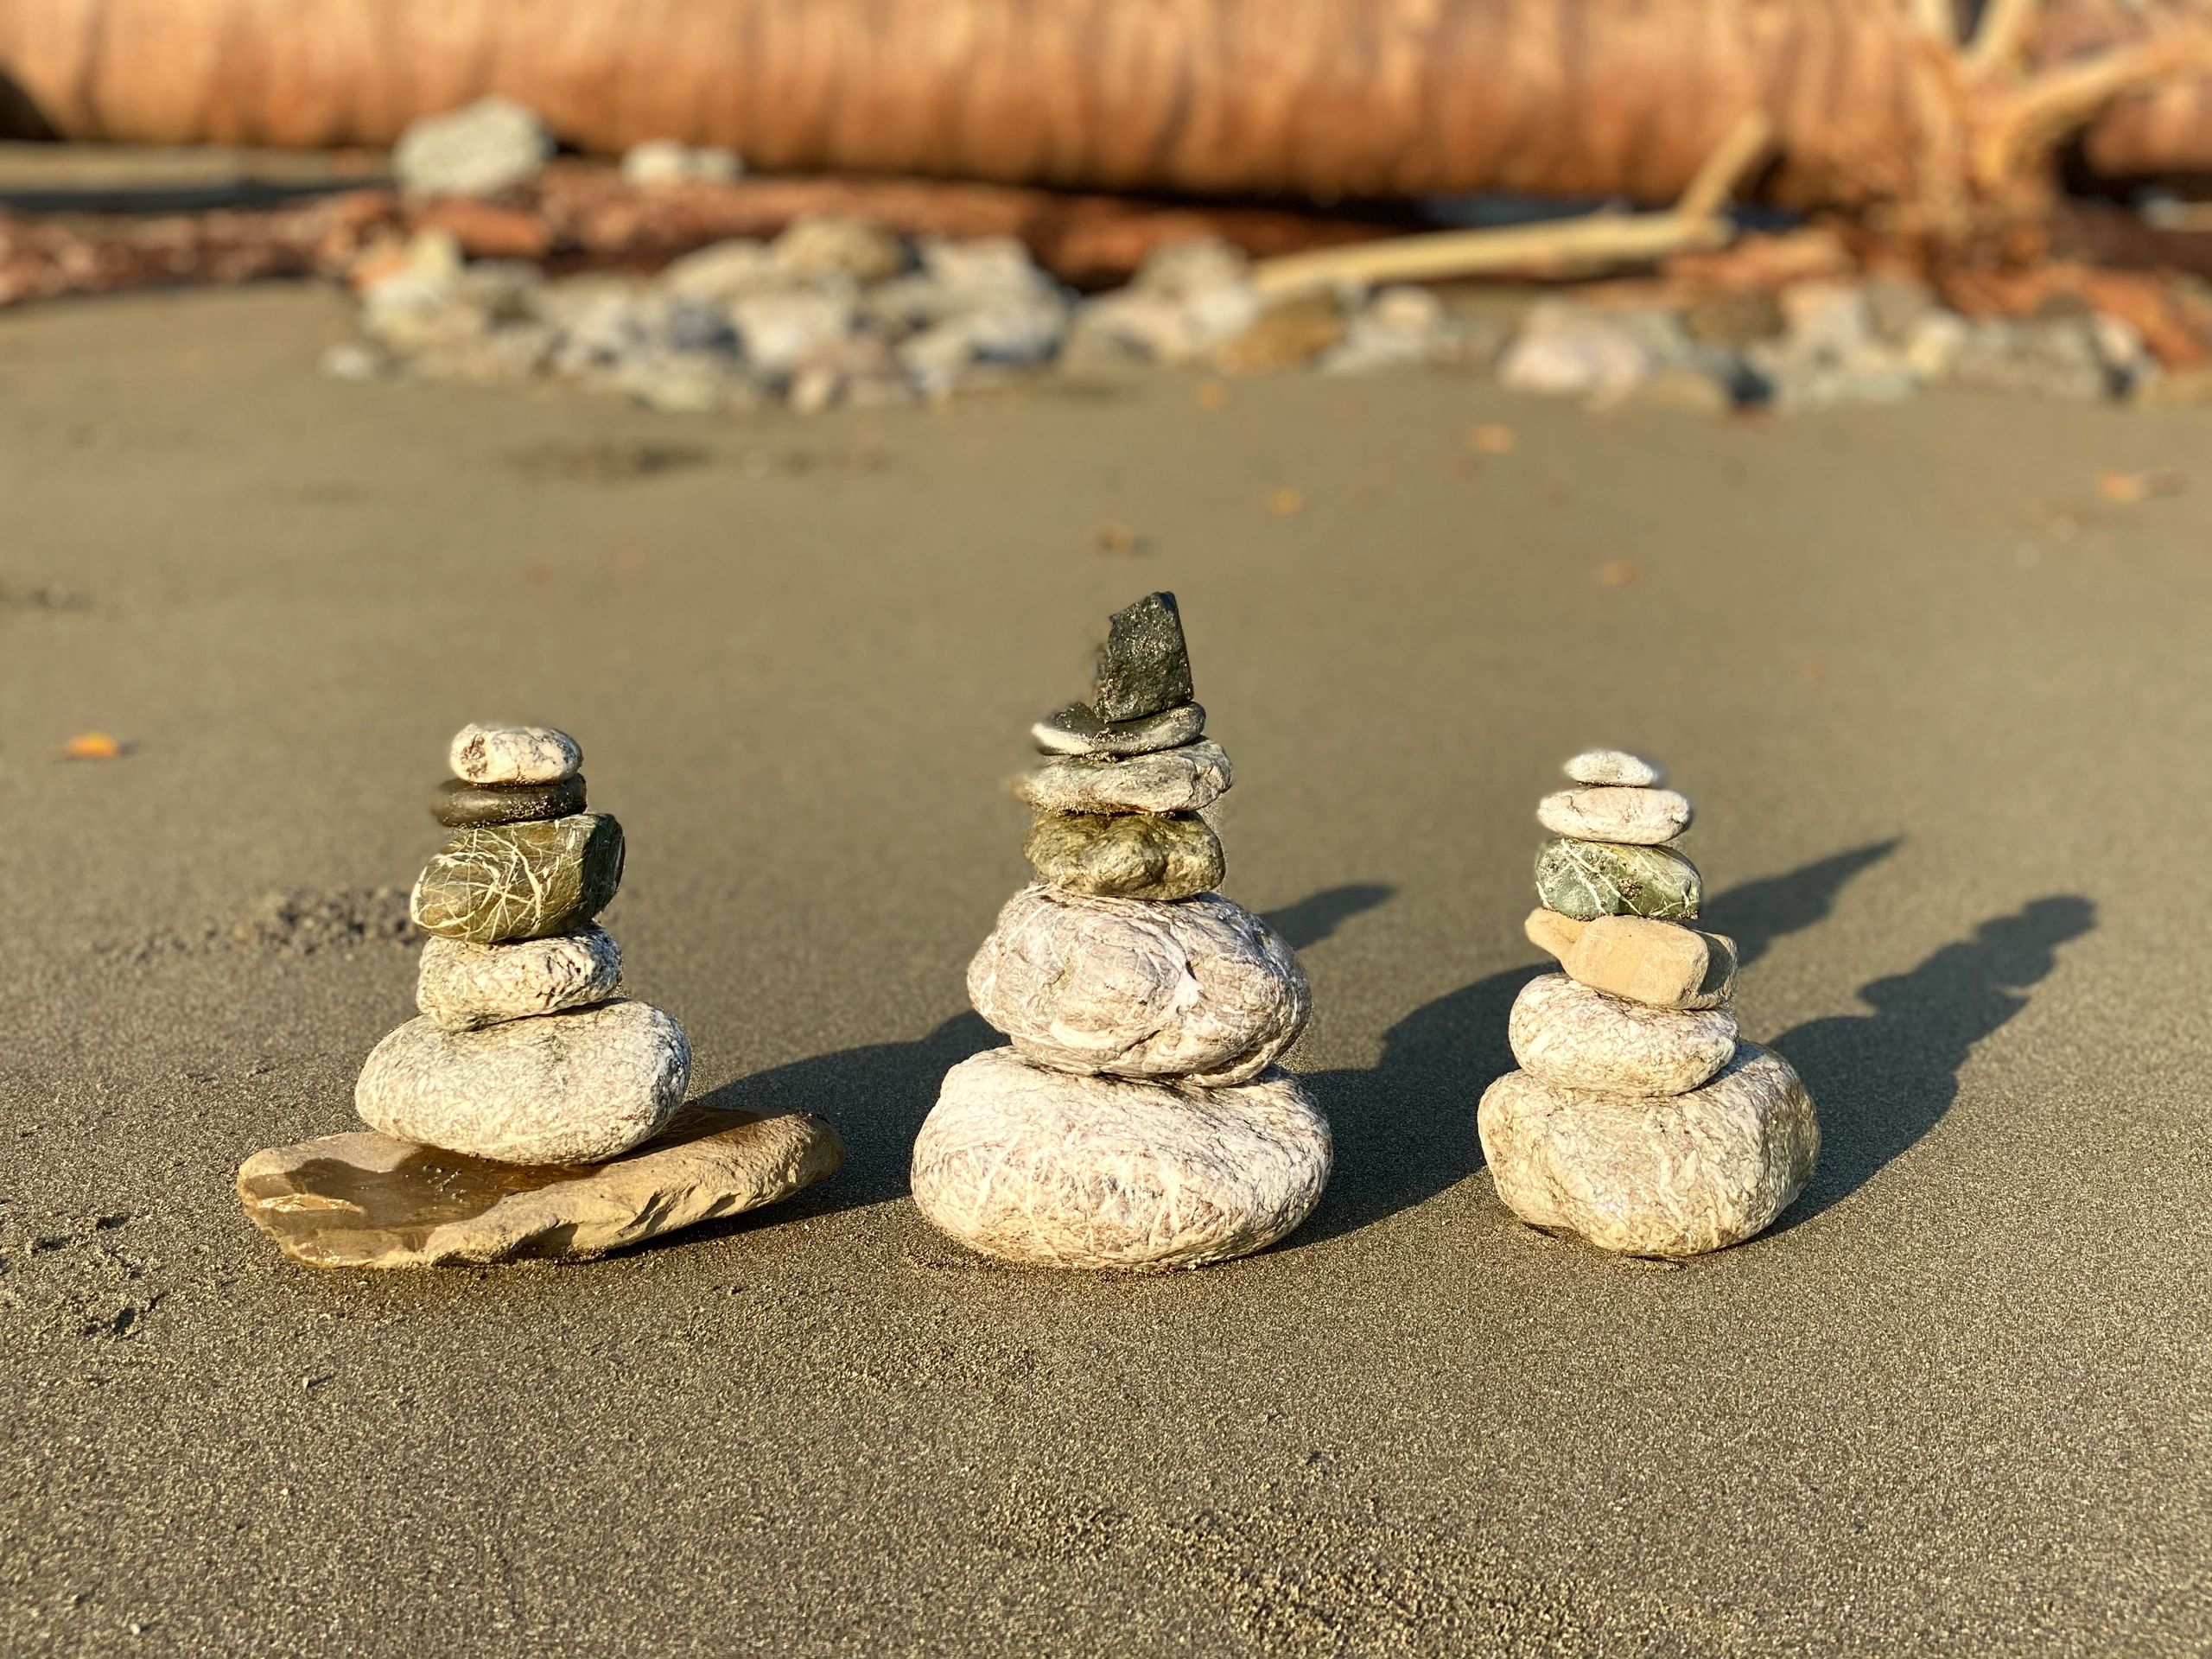 I built these cairns on morning walking meditation in Costa Rica in Feb of 2020 on a yoga retreat.